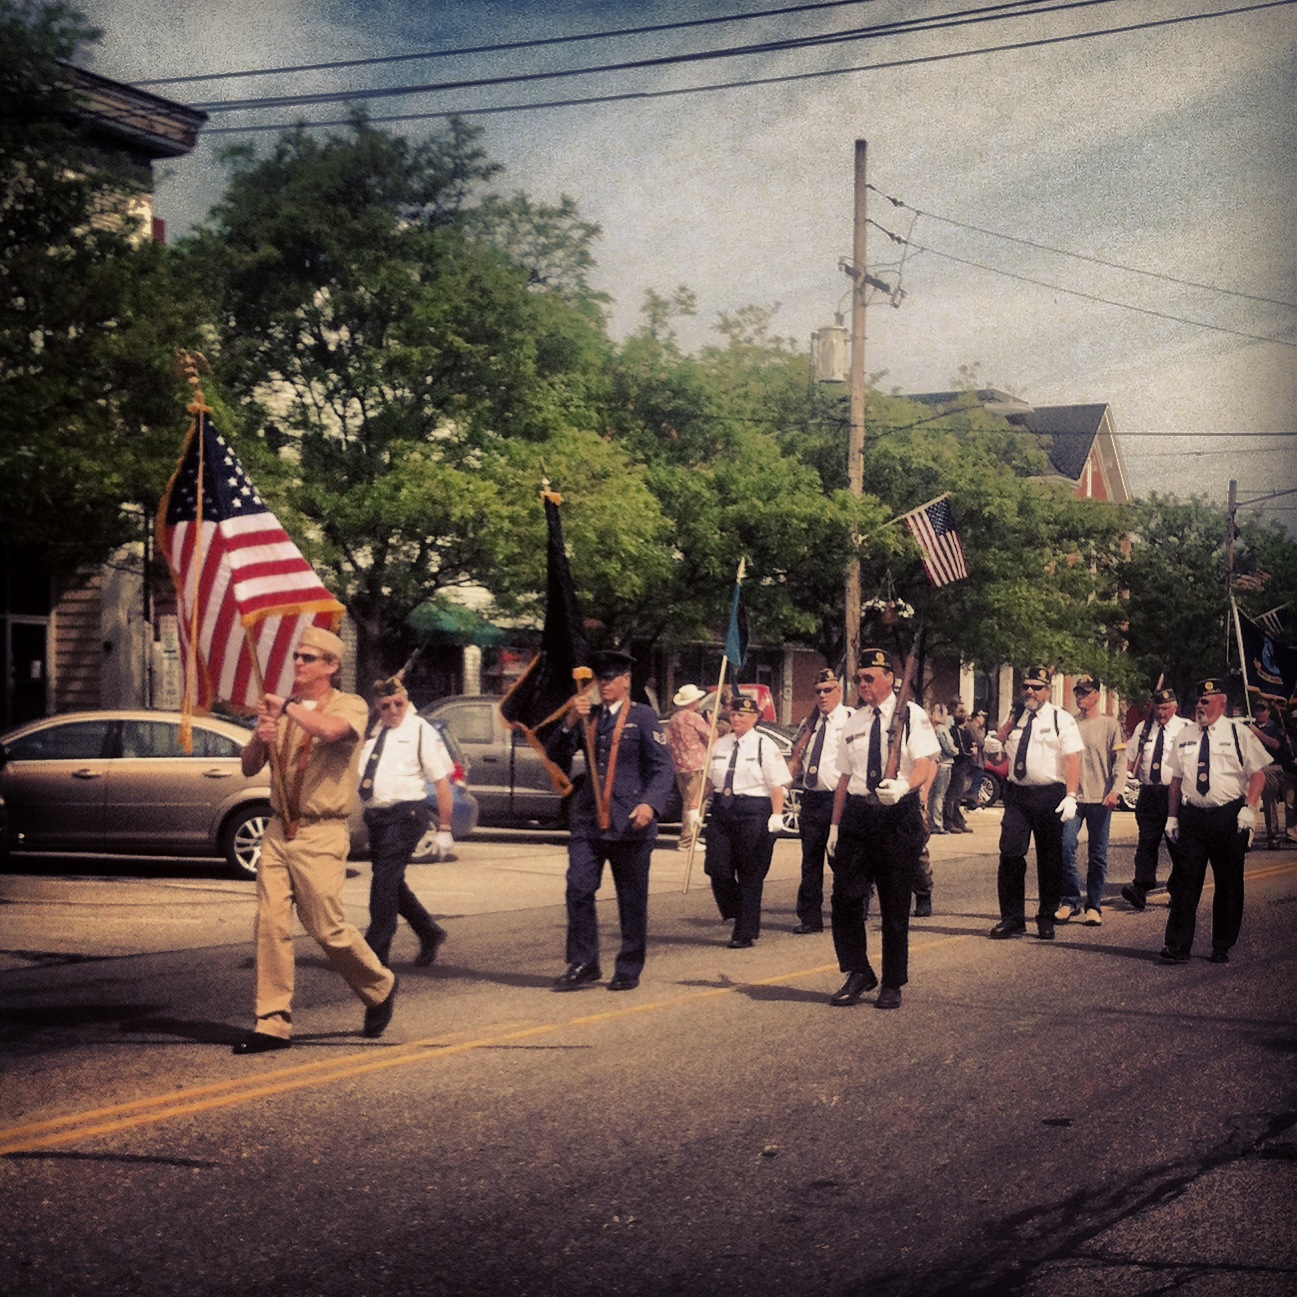 Veterans Marching in the Parade